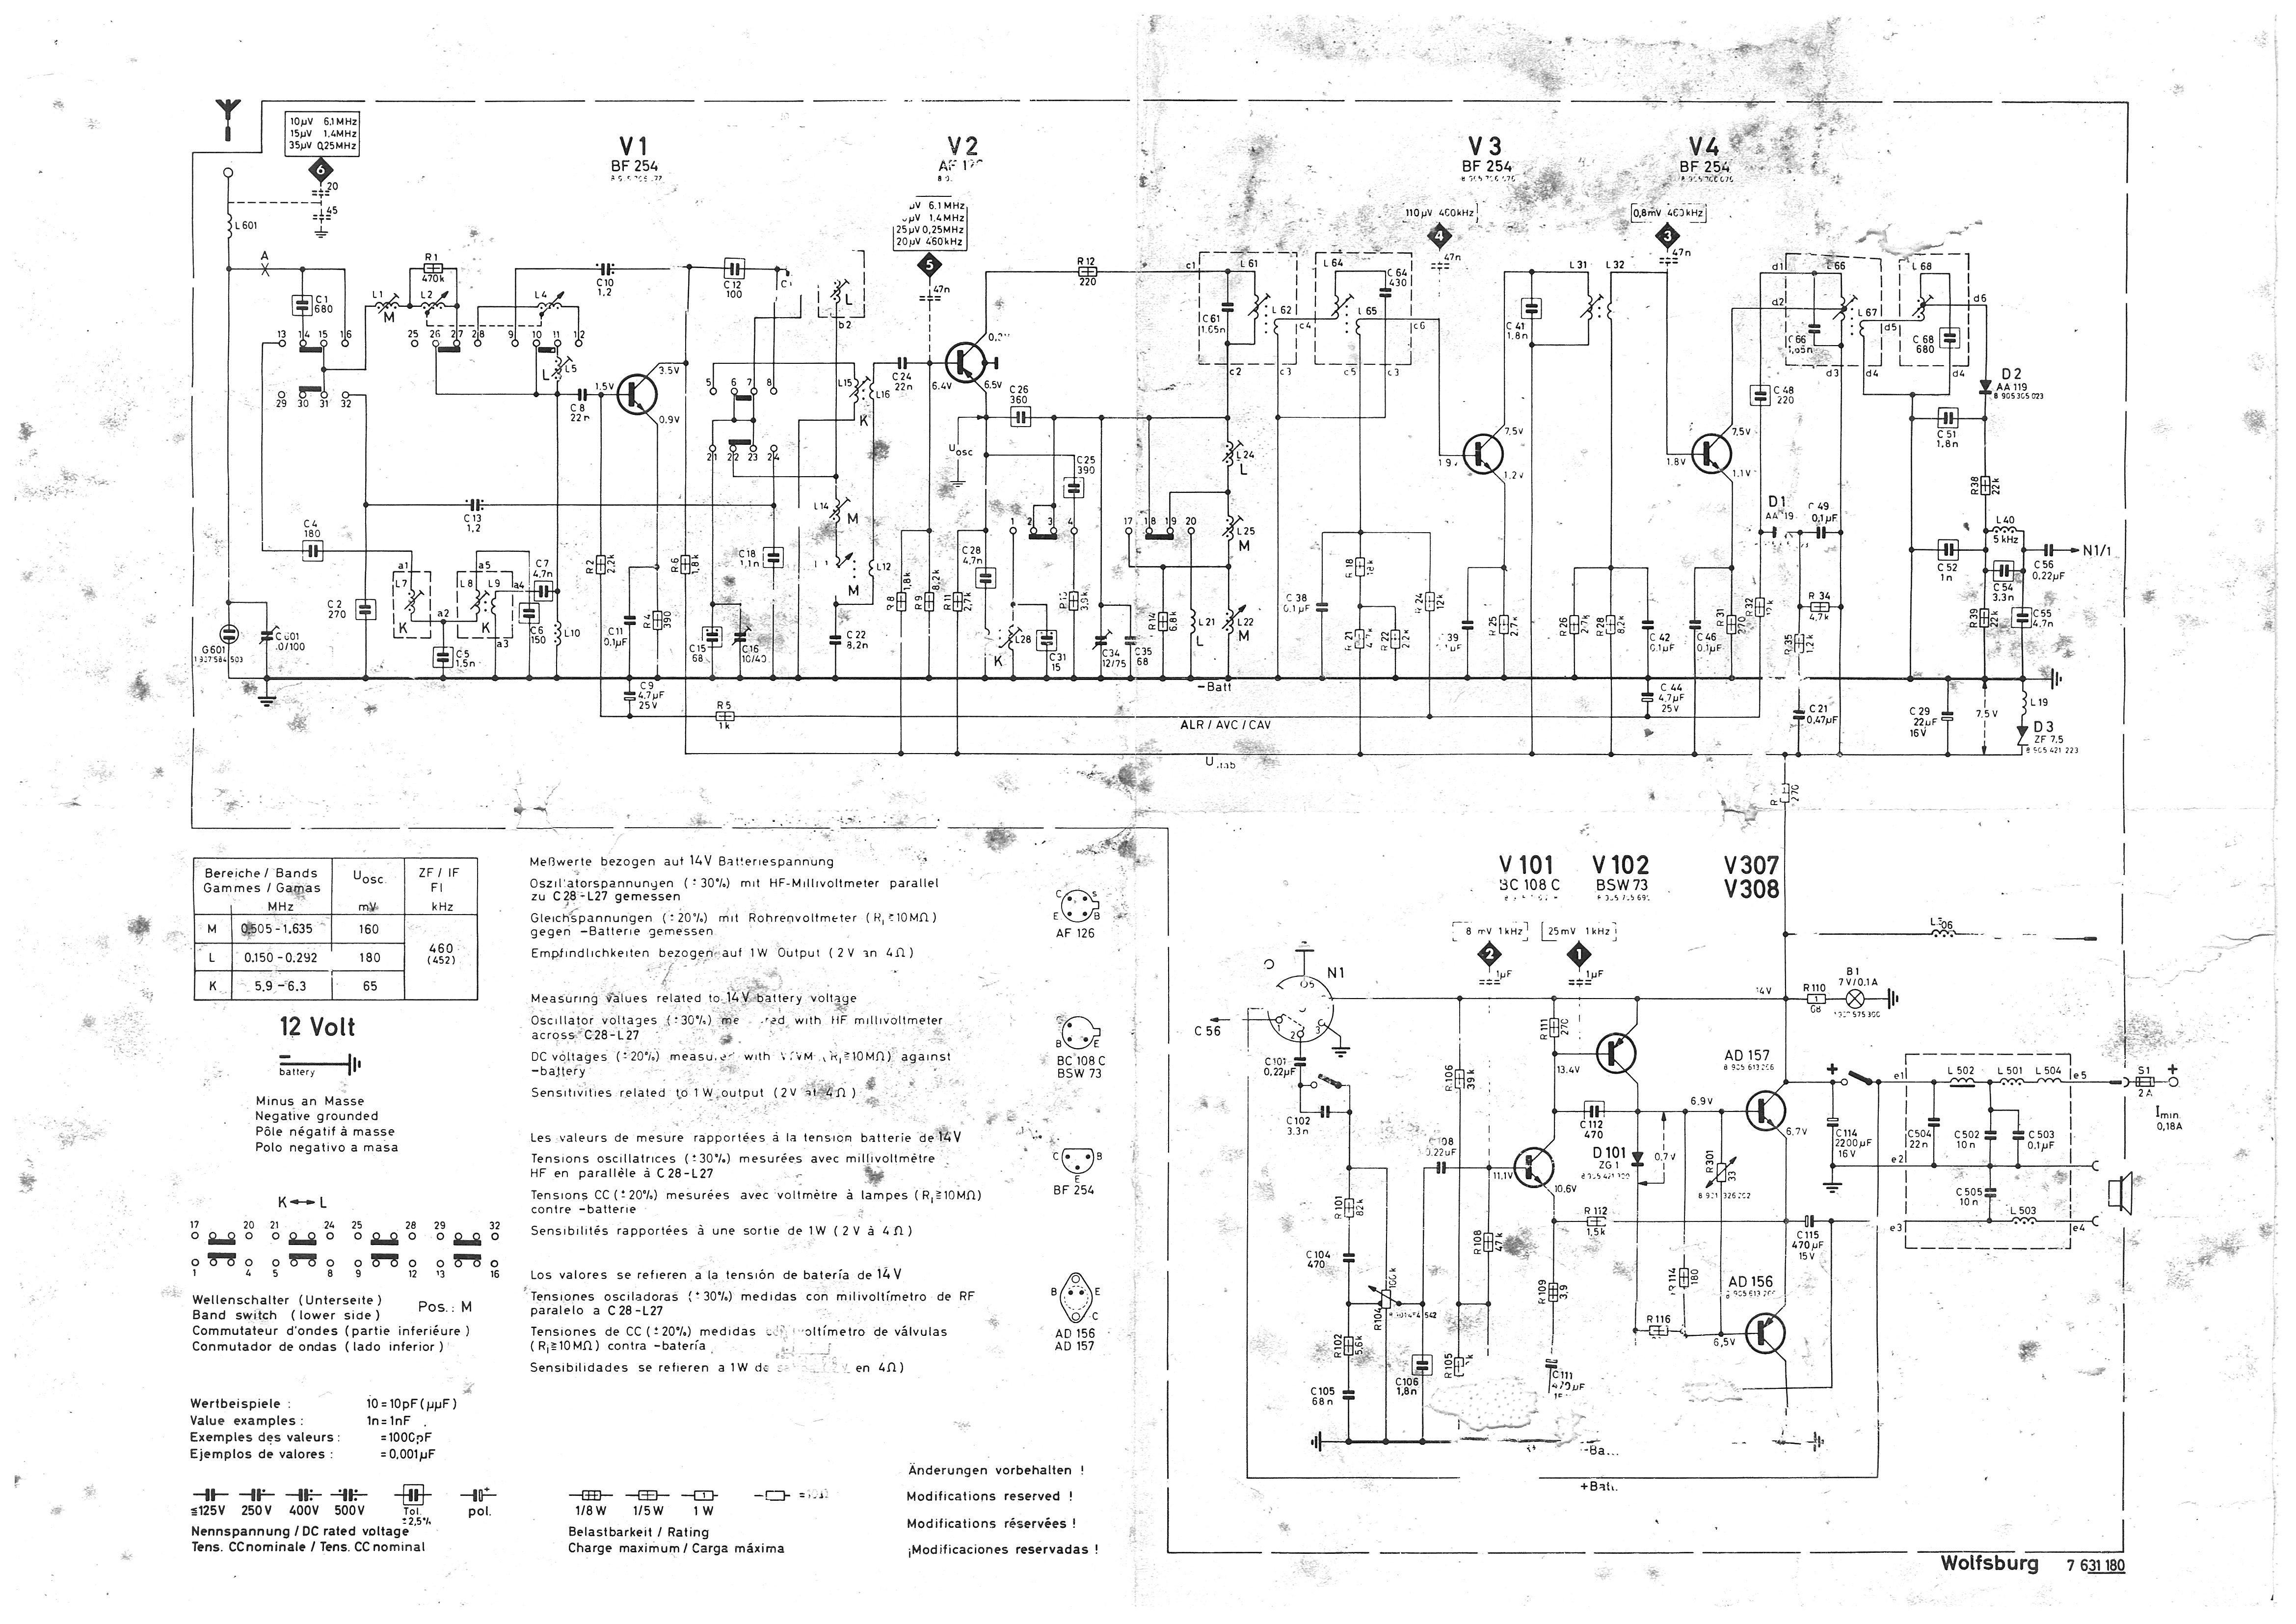 Wiring Diagram Blaupunkt Car Stereo Free For You Boss Harness Radio Emden Vw Help Uk Vintage Bose Diagrams Kenwood